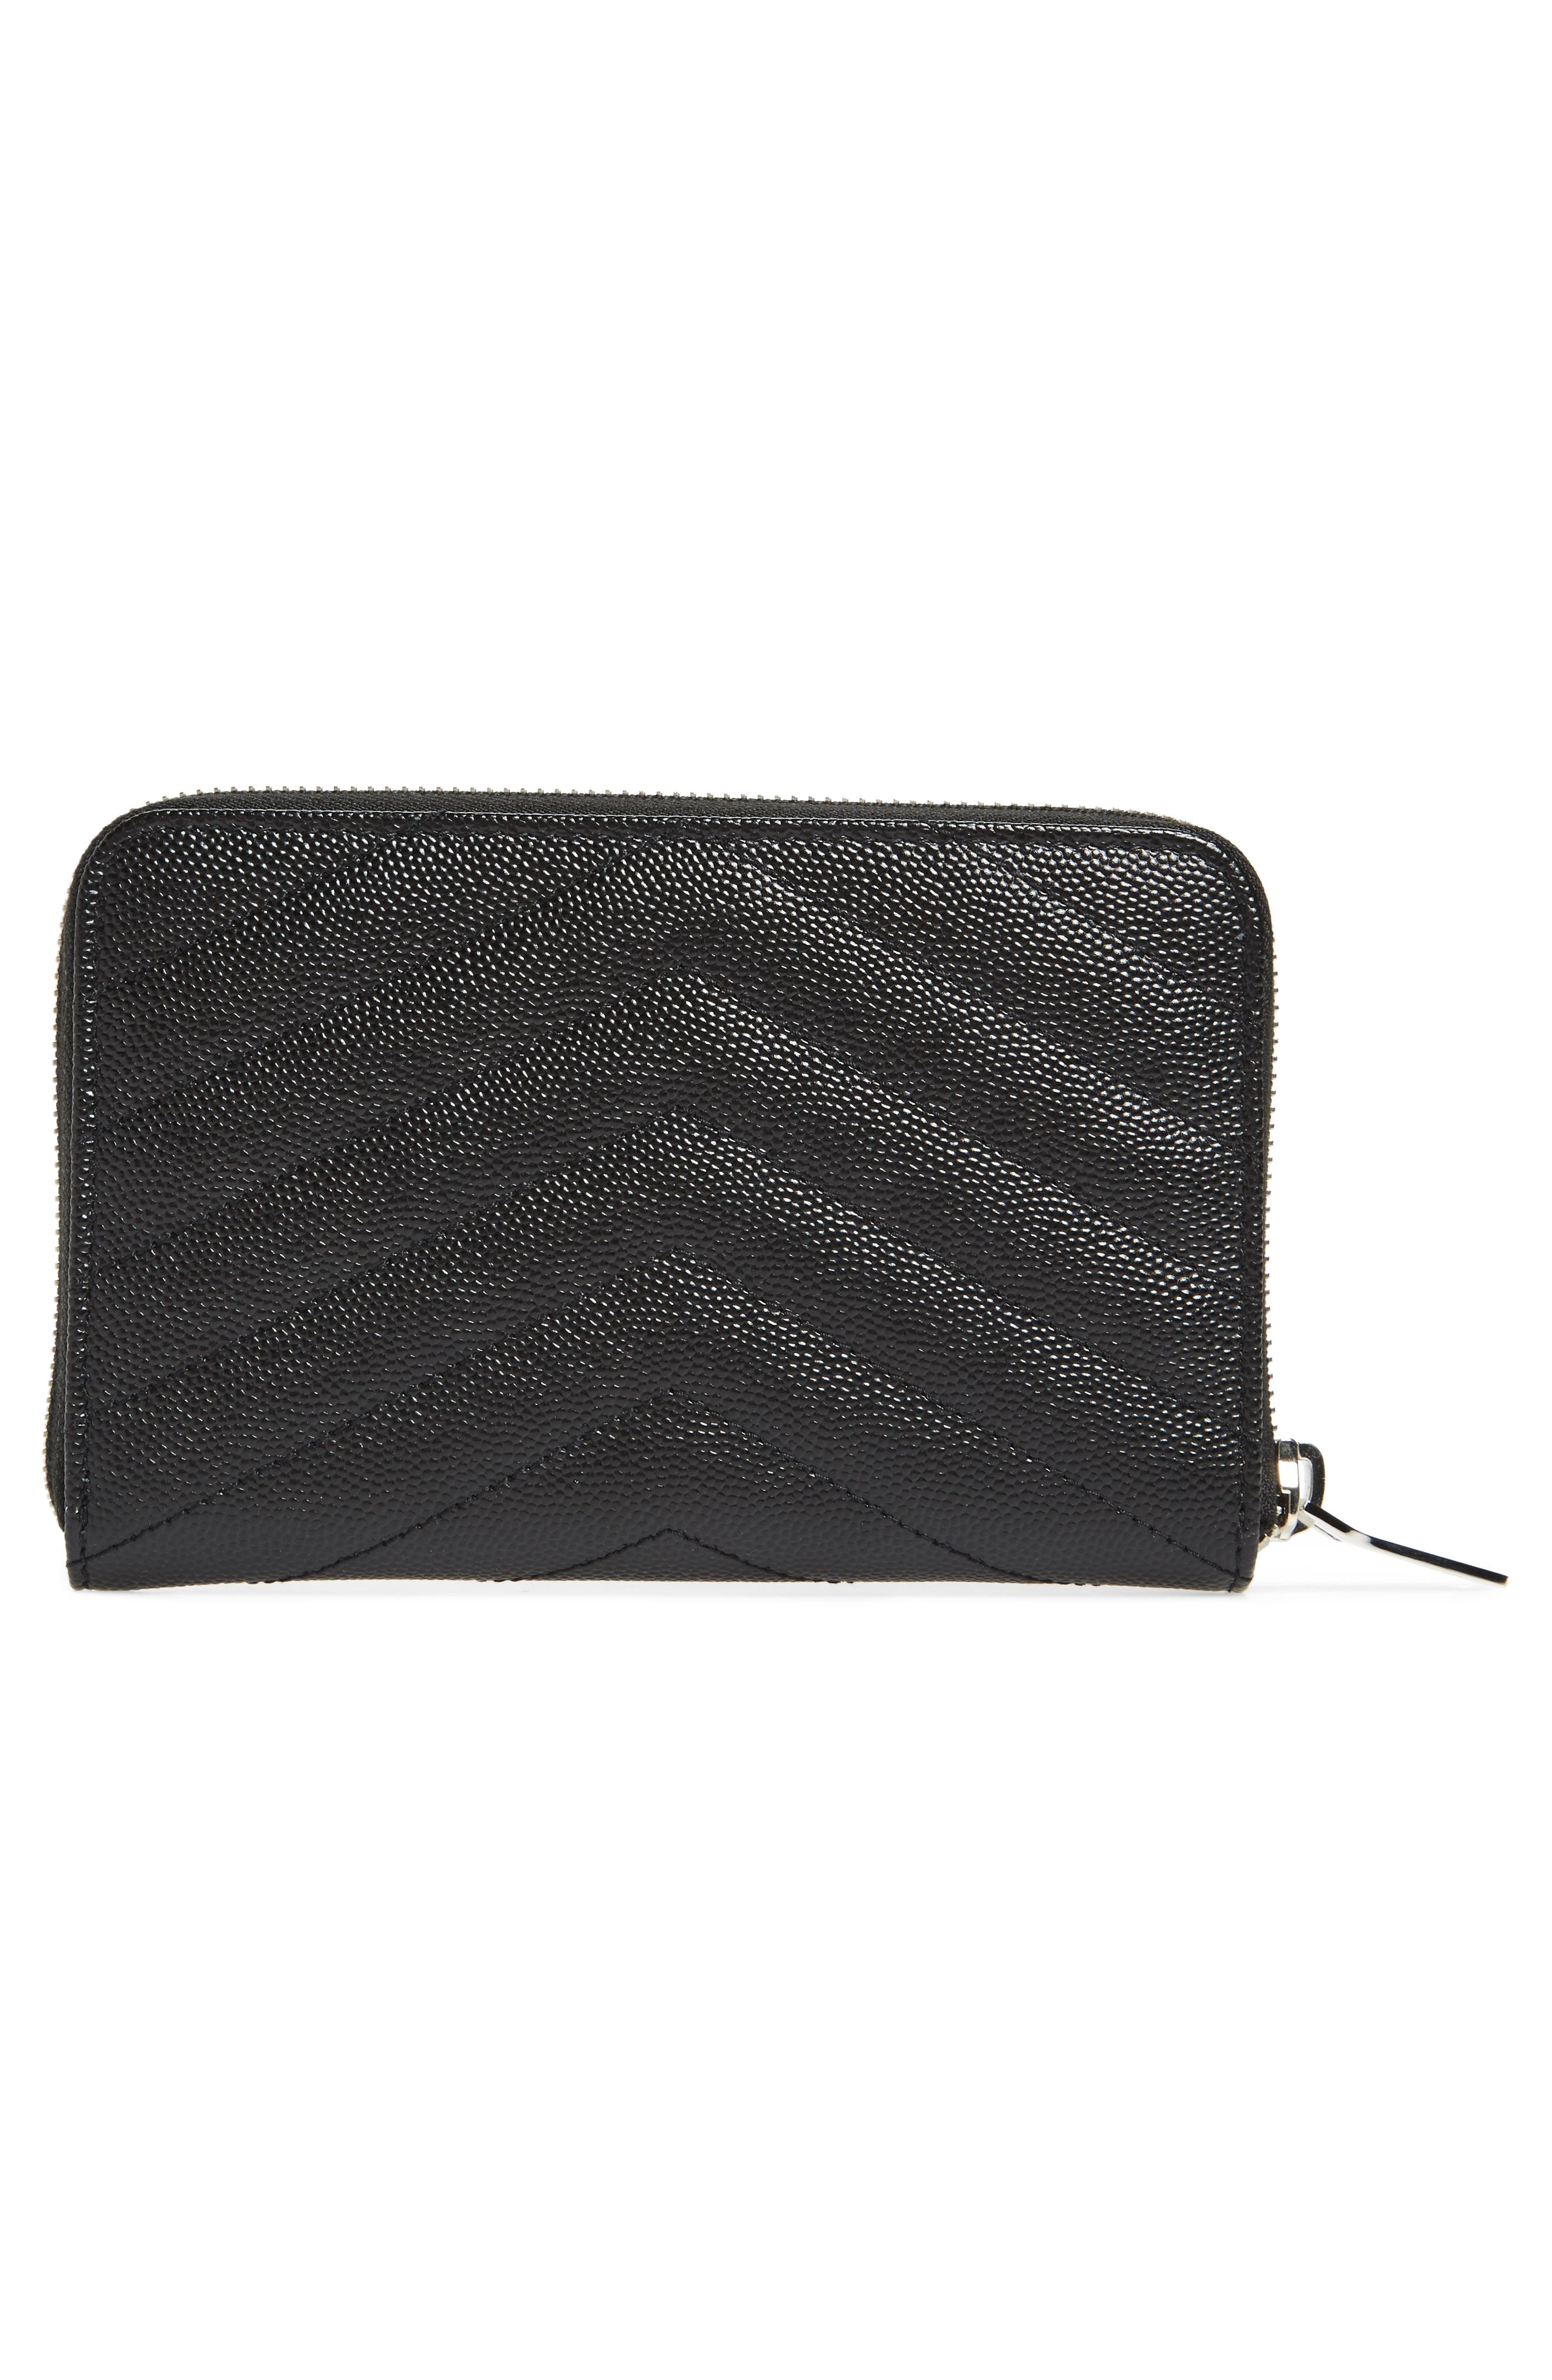 Small Grained Leather Zip Around Wallet,                             Alternate thumbnail 3, color,                             001